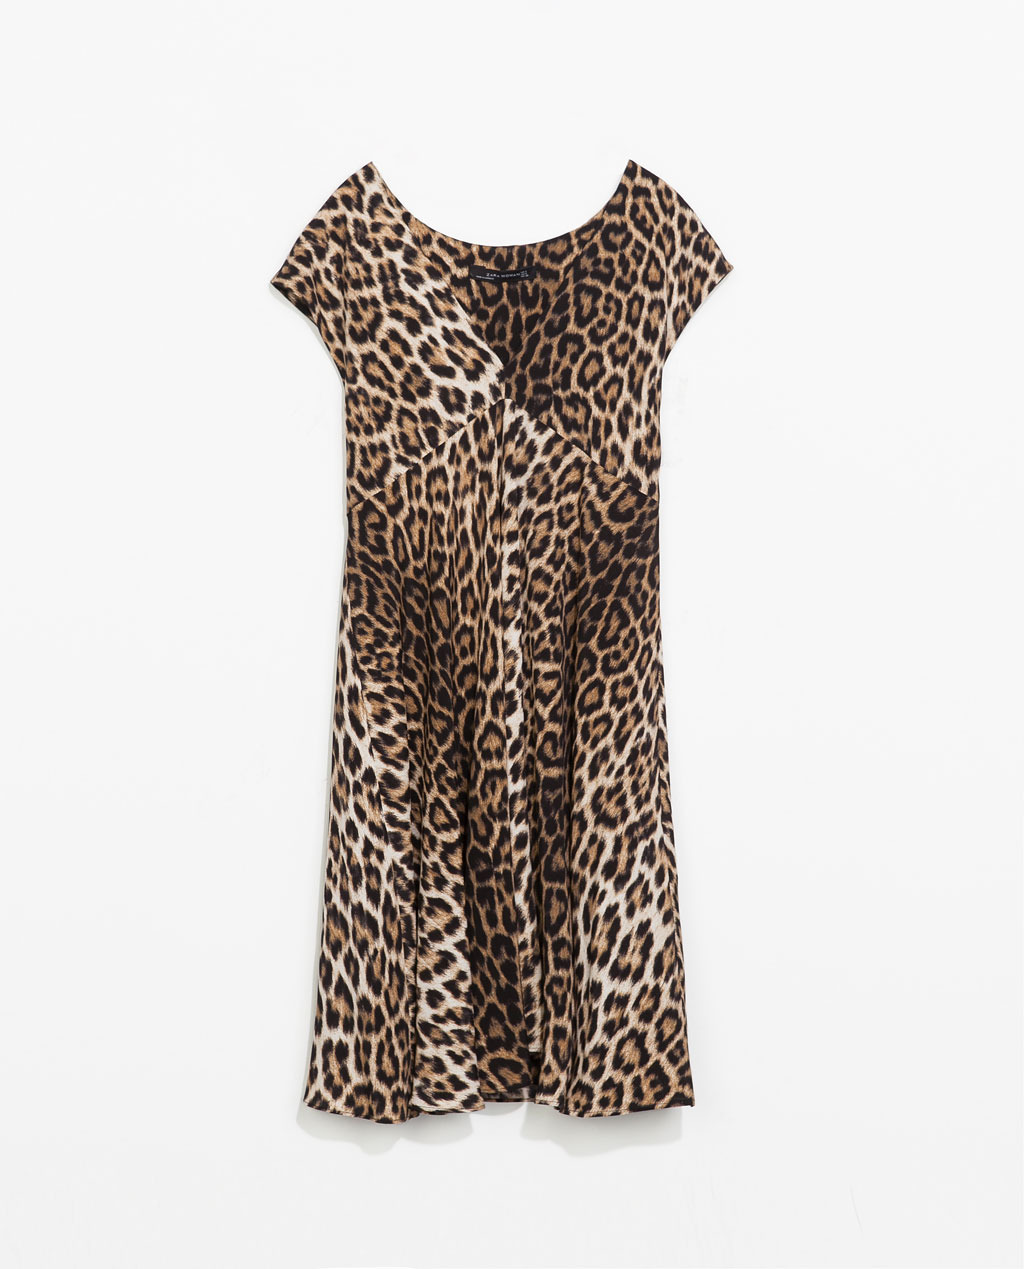 Animal Print Dress - style: shift; neckline: low v-neck; sleeve style: capped; fit: loose; secondary colour: chocolate brown; predominant colour: tan; occasions: casual, evening, holiday, creative work; length: just above the knee; fibres: viscose/rayon - 100%; sleeve length: short sleeve; pattern type: fabric; pattern size: standard; pattern: animal print; texture group: jersey - stretchy/drapey; season: s/s 2014